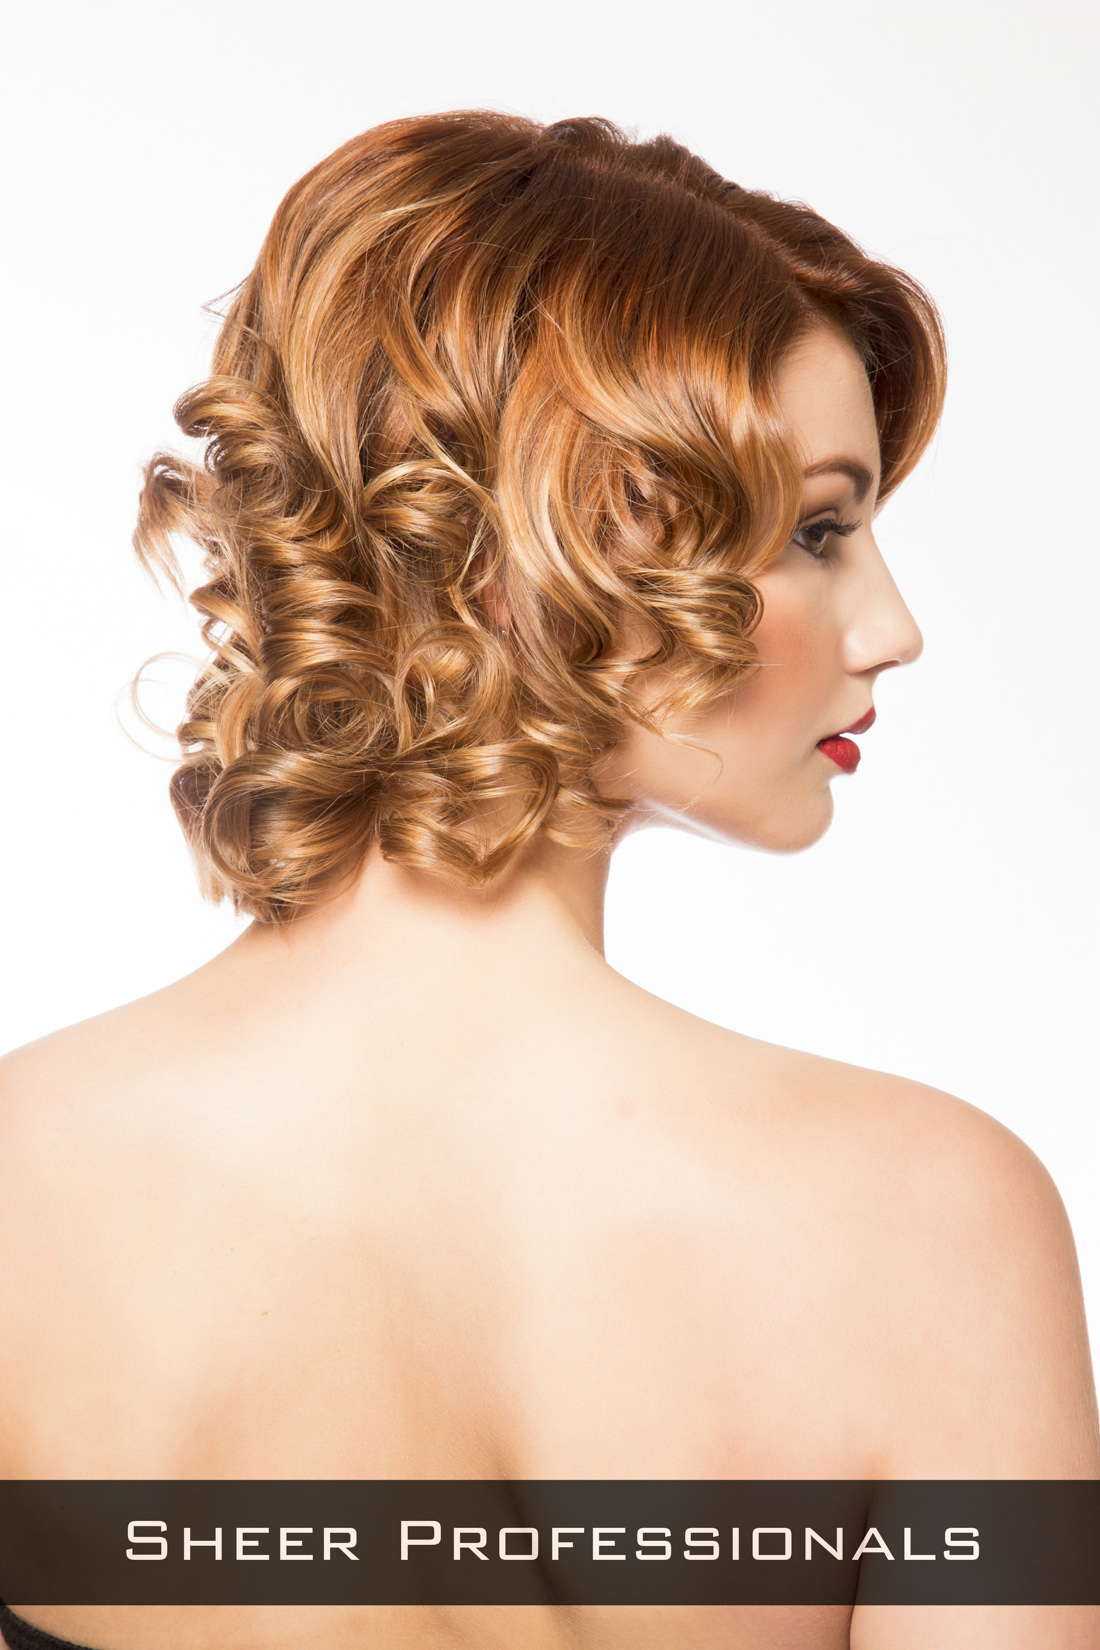 Short-Hairstyle-with-Curls-for-Round-Faces-Side